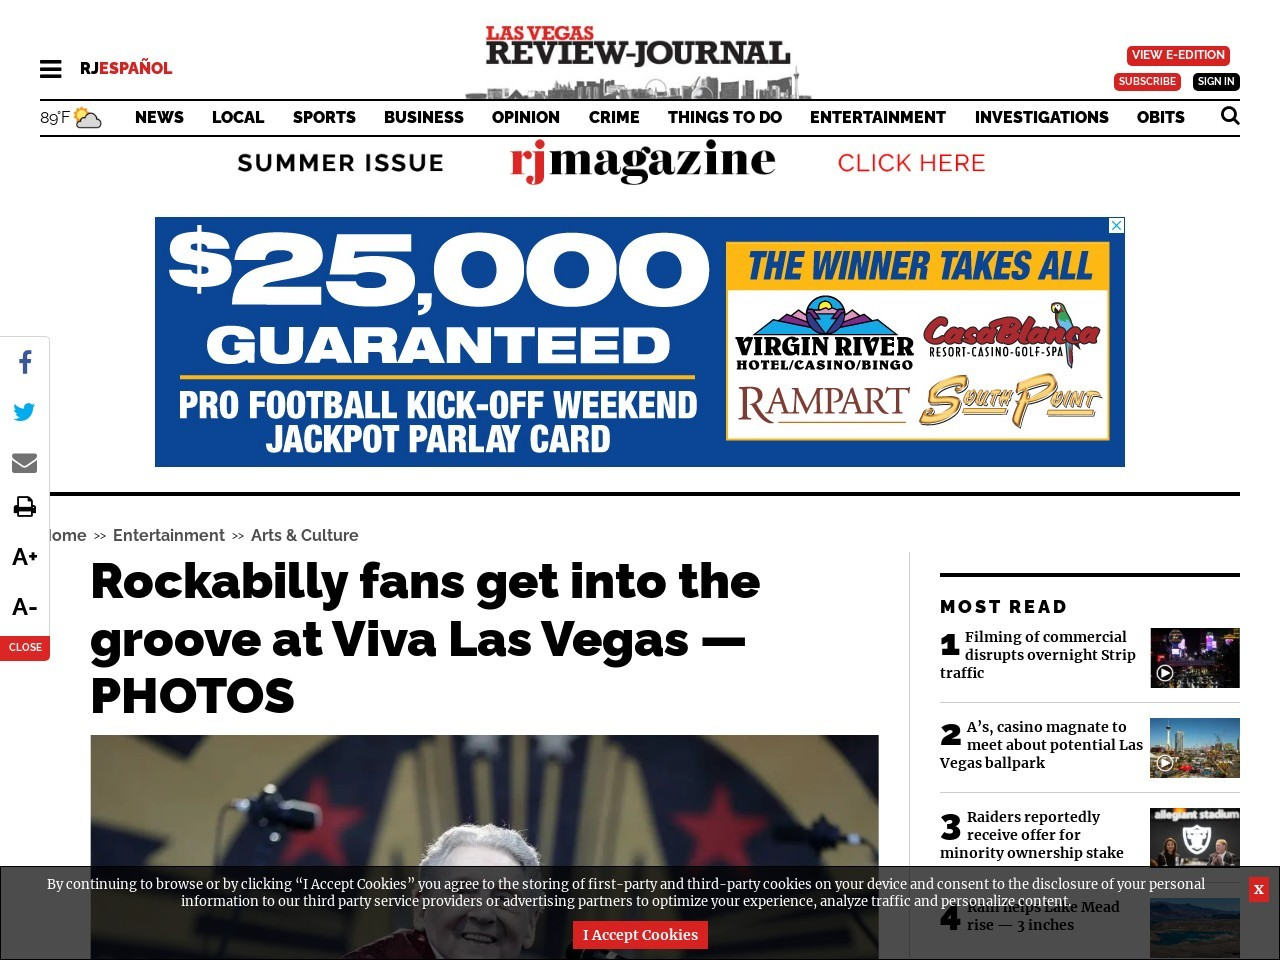 Rockabilly fans get into the groove at Viva Las Vegas — PHOTOS